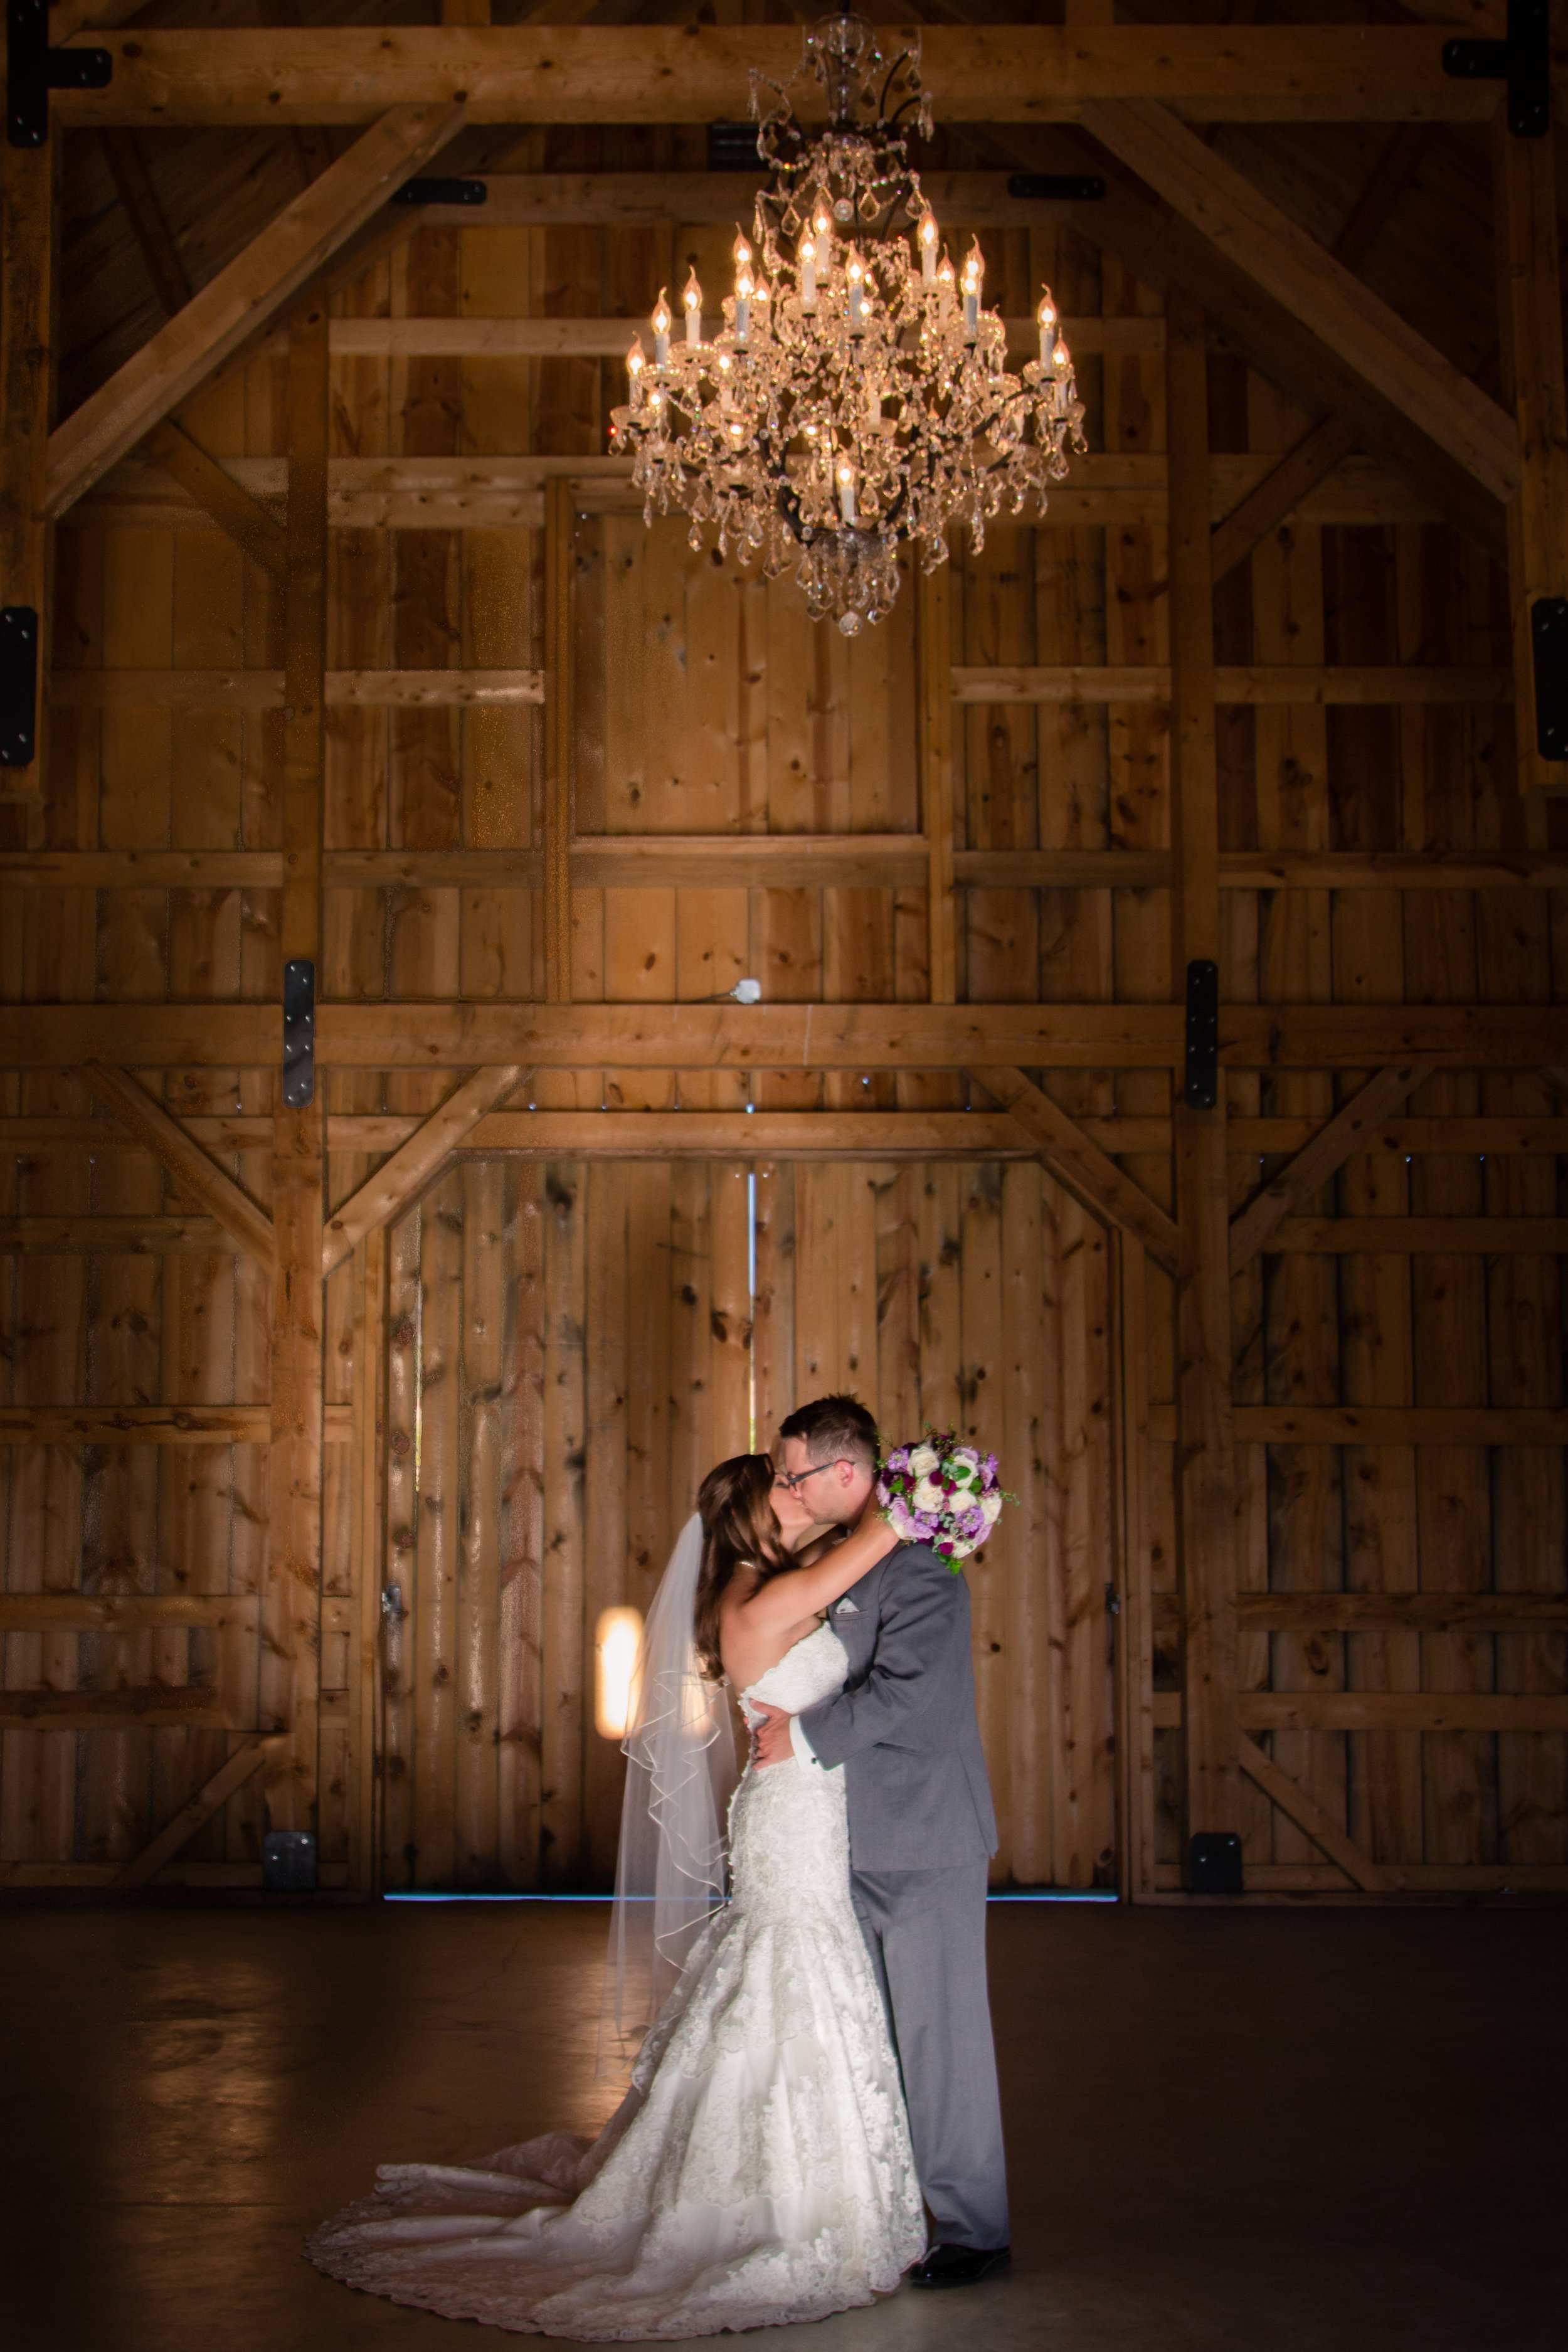 Sacramento Wedding Photographer | Amador Cellars Winery | Amador, CA | Ashley Teasley Photography